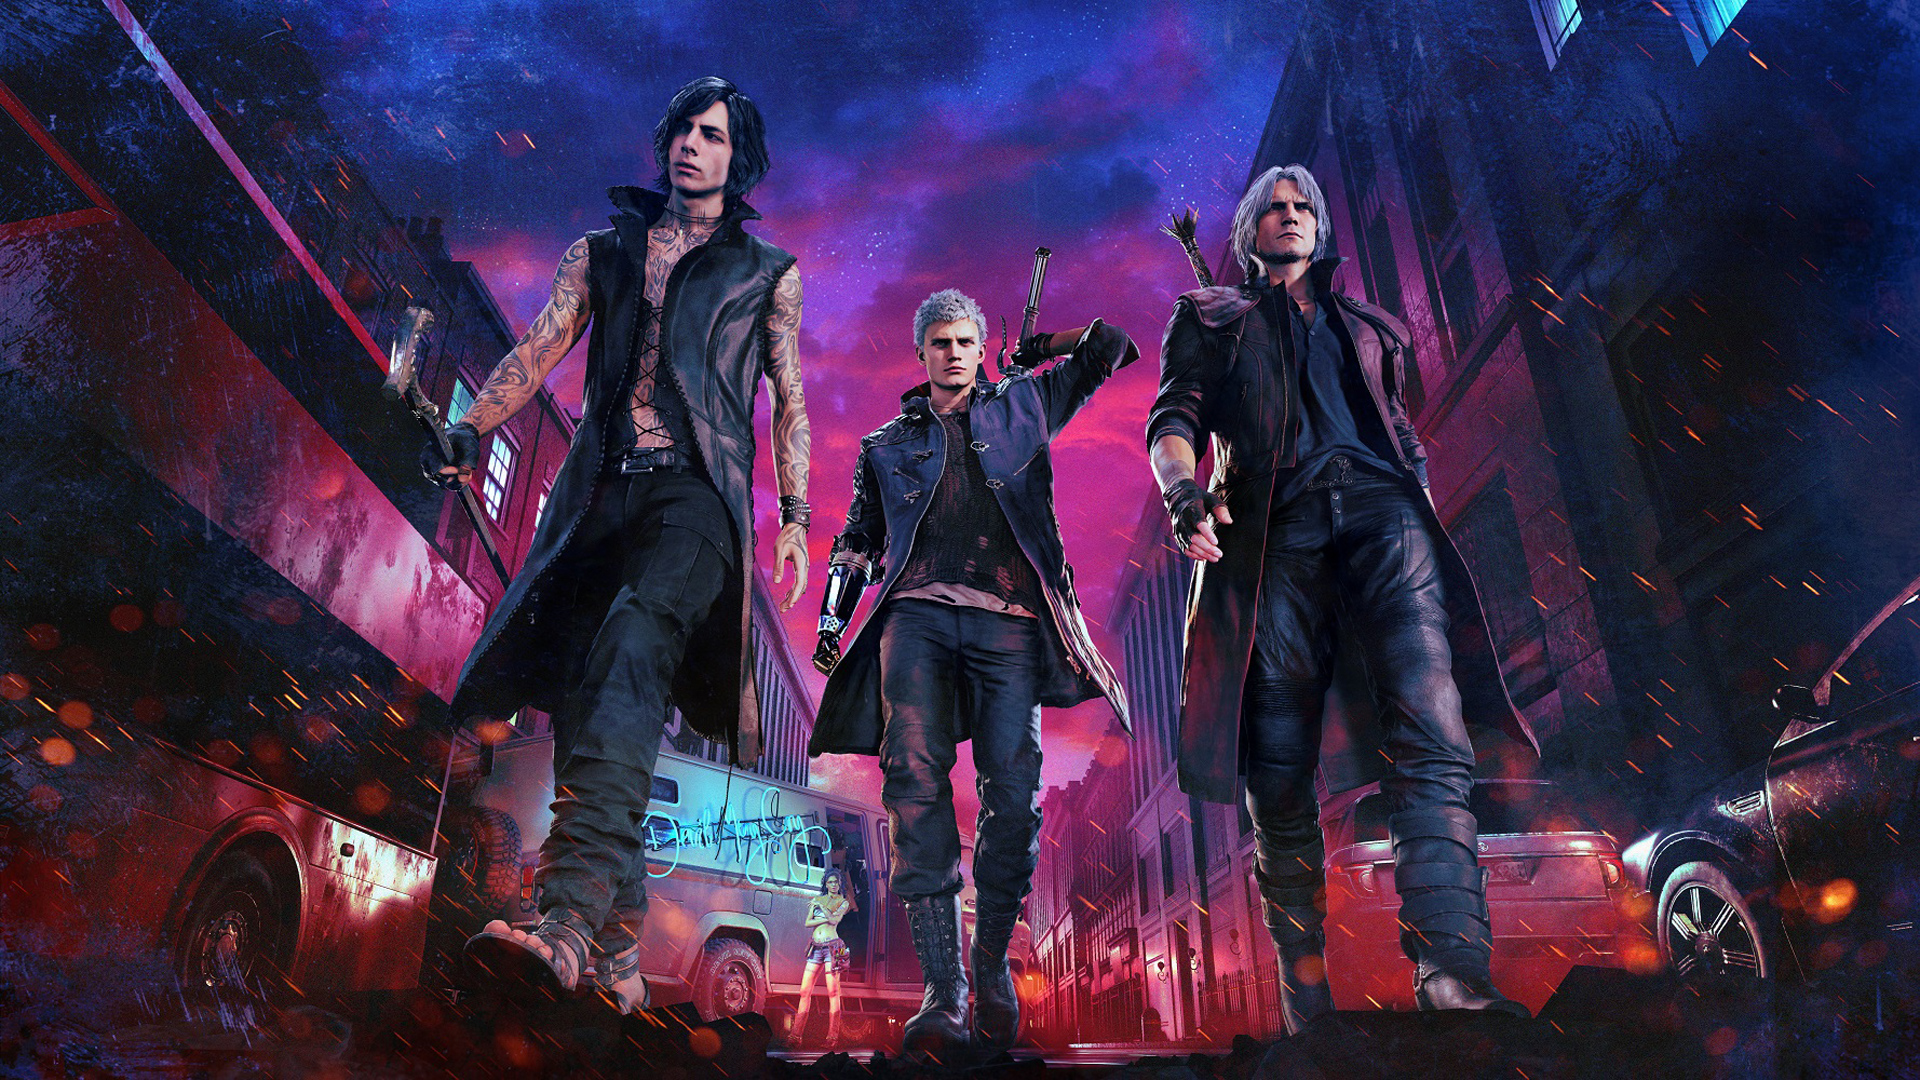 Devil May Cry 5 Wallpaper: 2019 Devil May Cry 5 1080P, HD Games, 4k Wallpapers